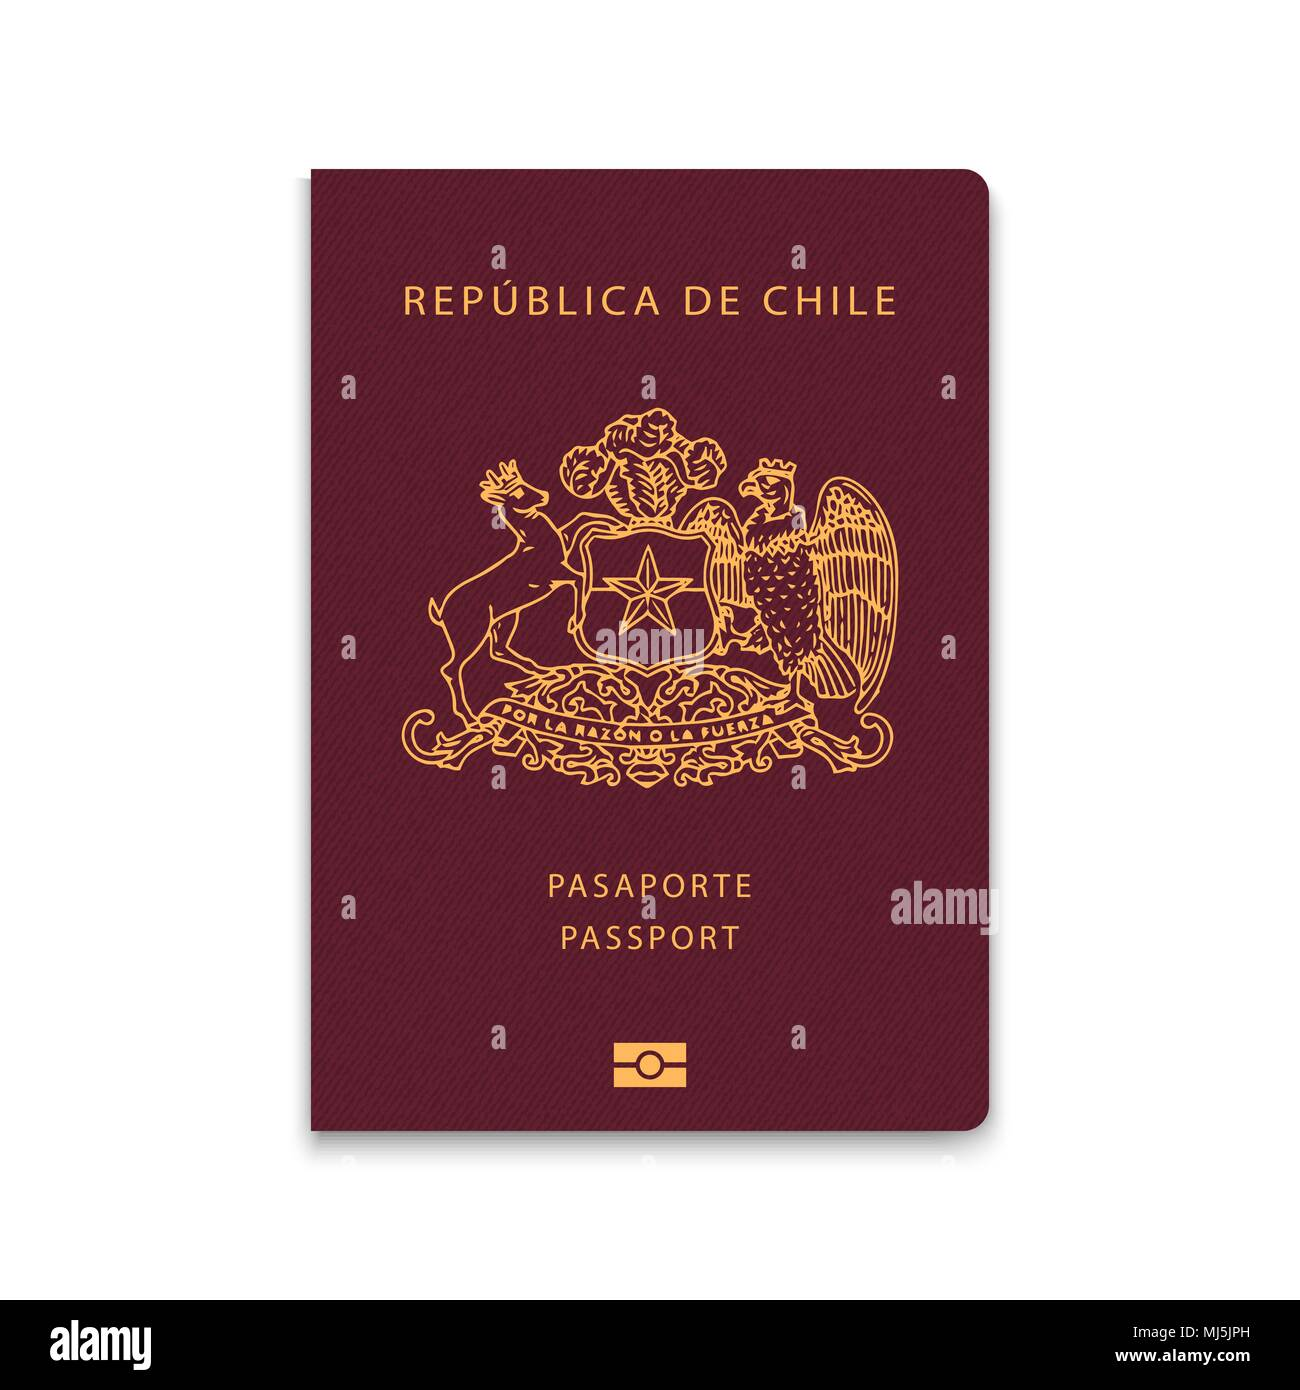 Passport of Chile. Vector illustration - Stock Image